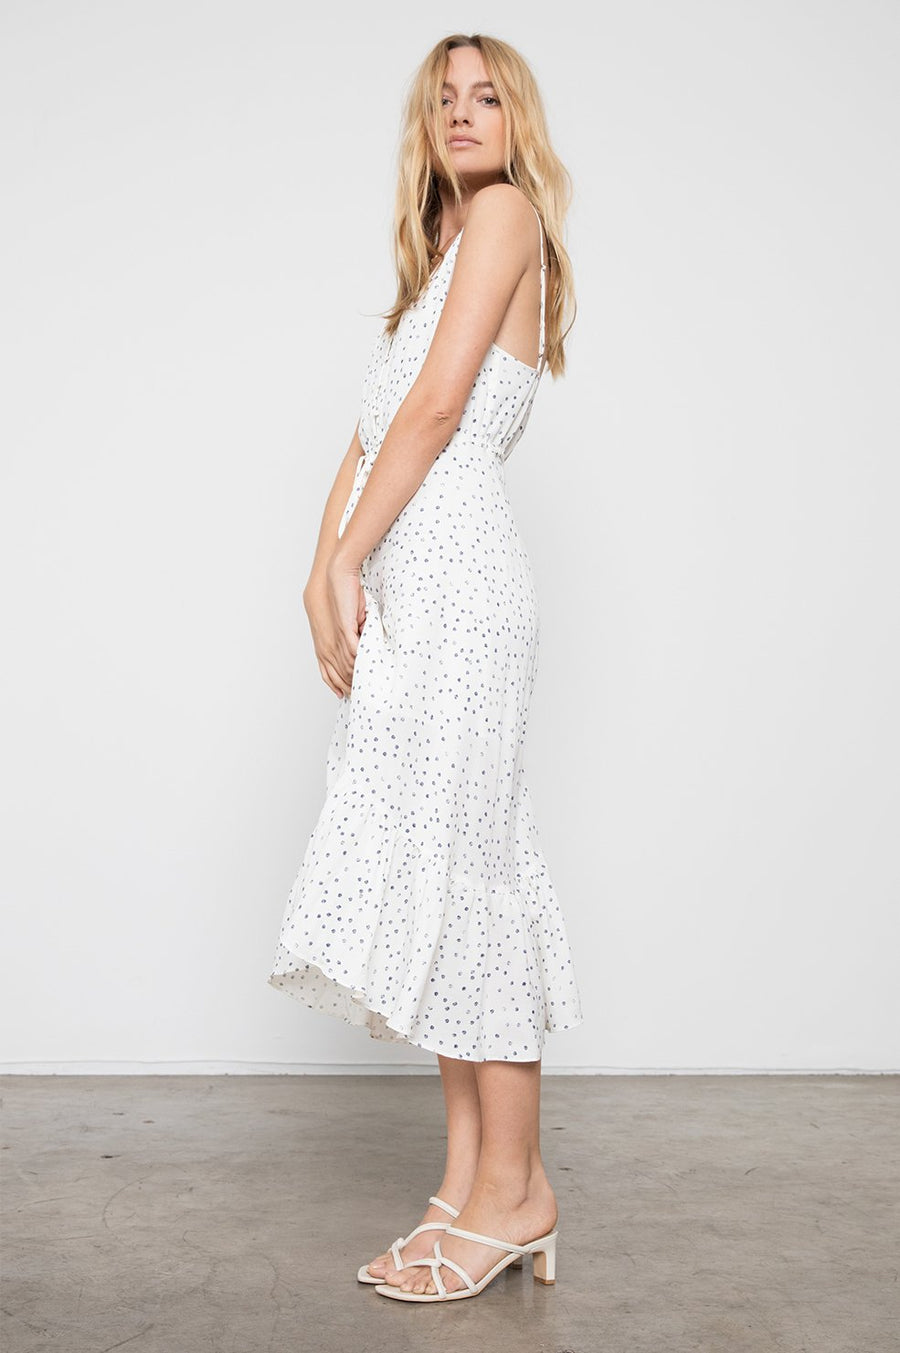 Frida Dress - Ivory Speckled - Pavilion